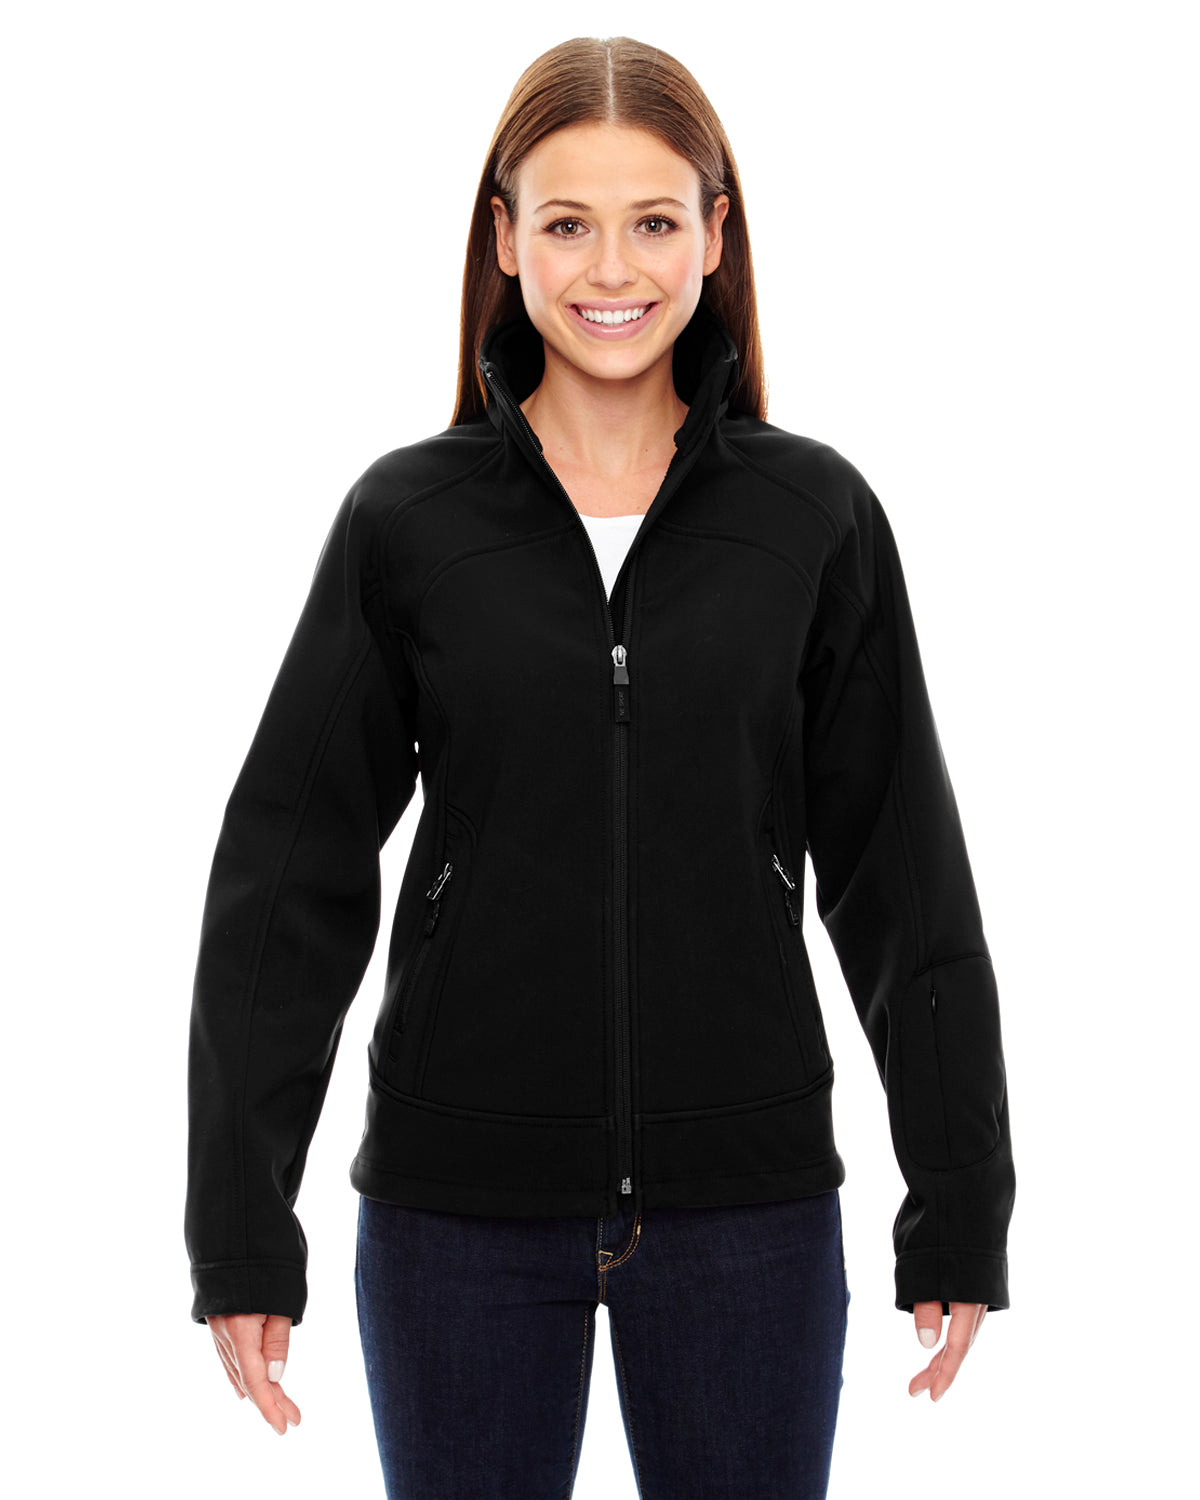 NORTH END LADIES THREE LAYER LIGHT BONDED SOFT SHELL JACKET